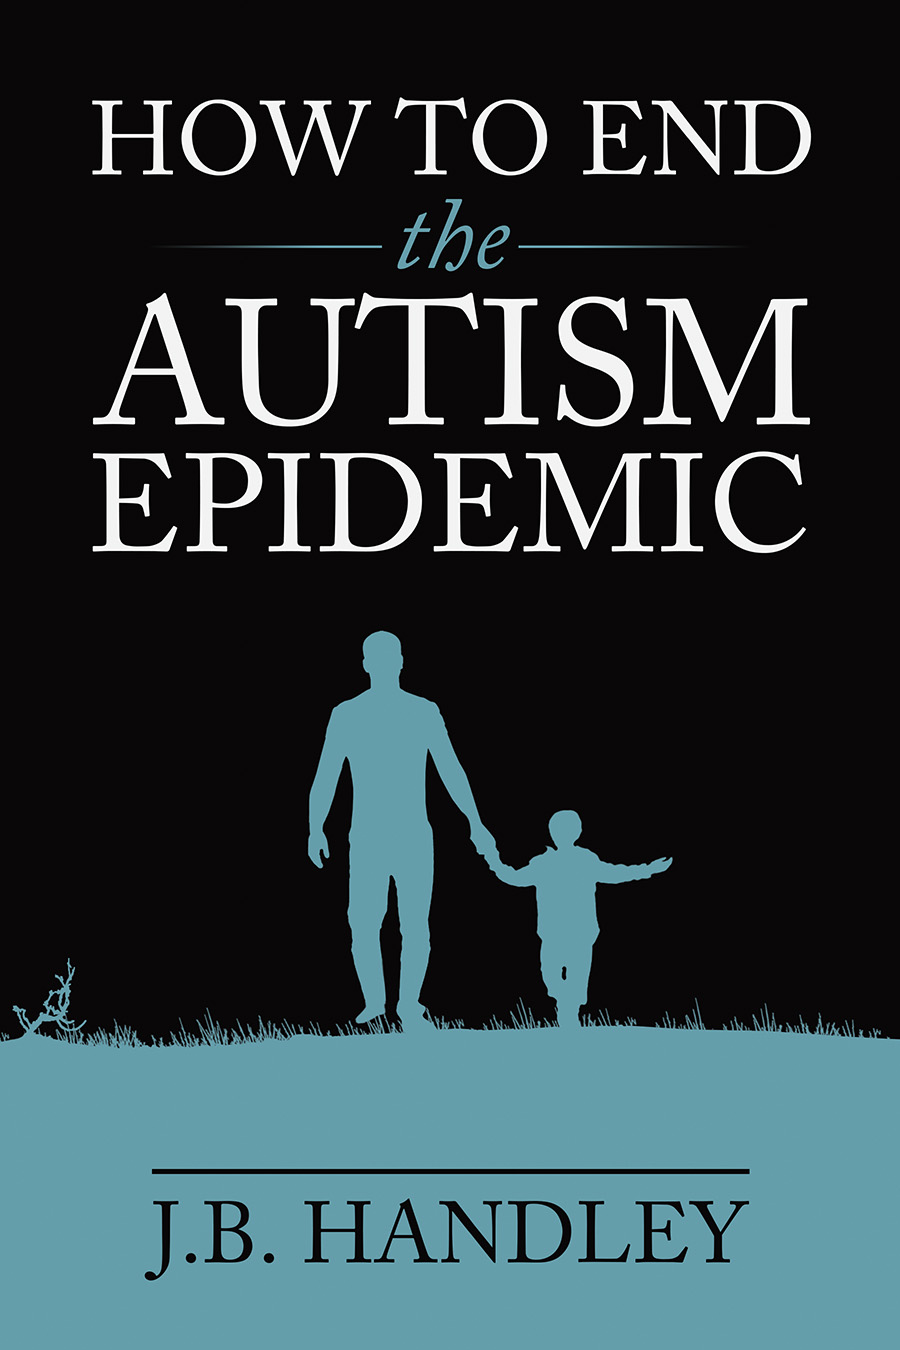 What If There Is No Autism Epidemic >> How To End The Autism Epidemic By J B Handley At Chelsea Green